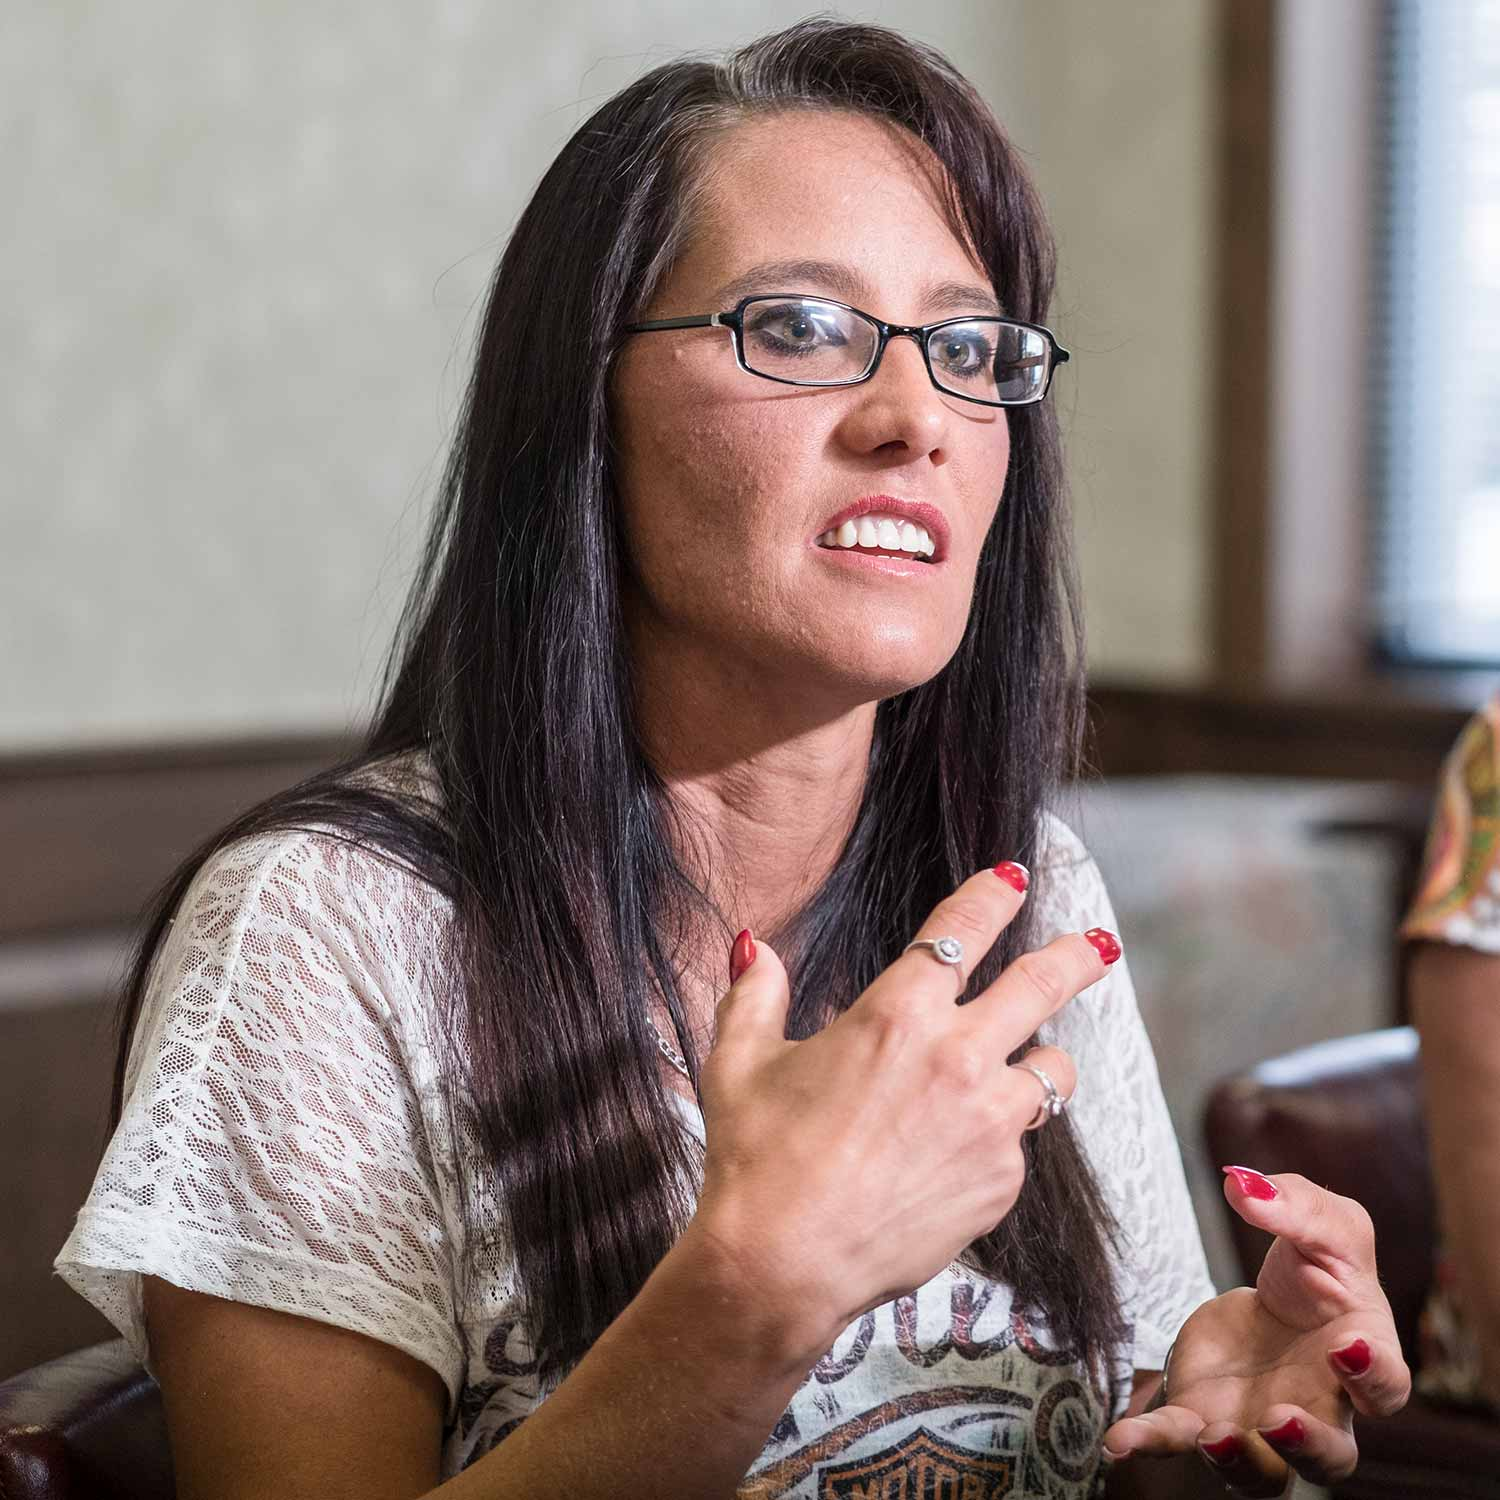 Homeless, jobless and helpless, Kasey reached out to the Jeffersontown Police Department for help and hope in battling her meth addiction. She found both through the department's Angel Initiative, which allows addicts to walk into the agency and receive assistance for immediate treatment. (Photo by Jim Robertson)